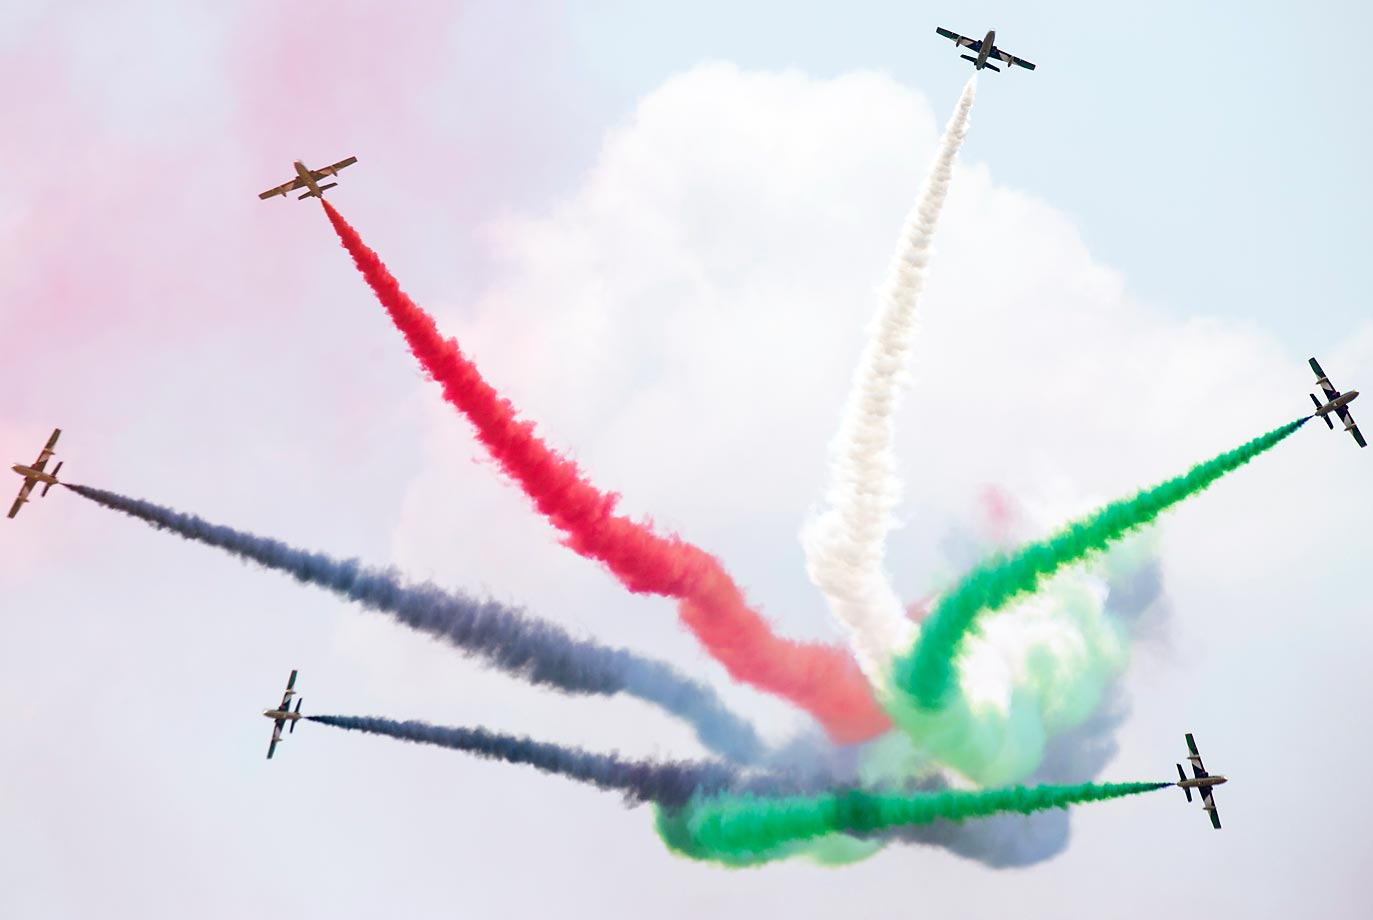 Alenia Aermacchi SpA MB-339 aircraft, operated by the United Arab Emirates Air Force's Al Fursan team, perform at the Langkawi International Maritime And Aerospace Exhibition in Langkawi, Malaysia.